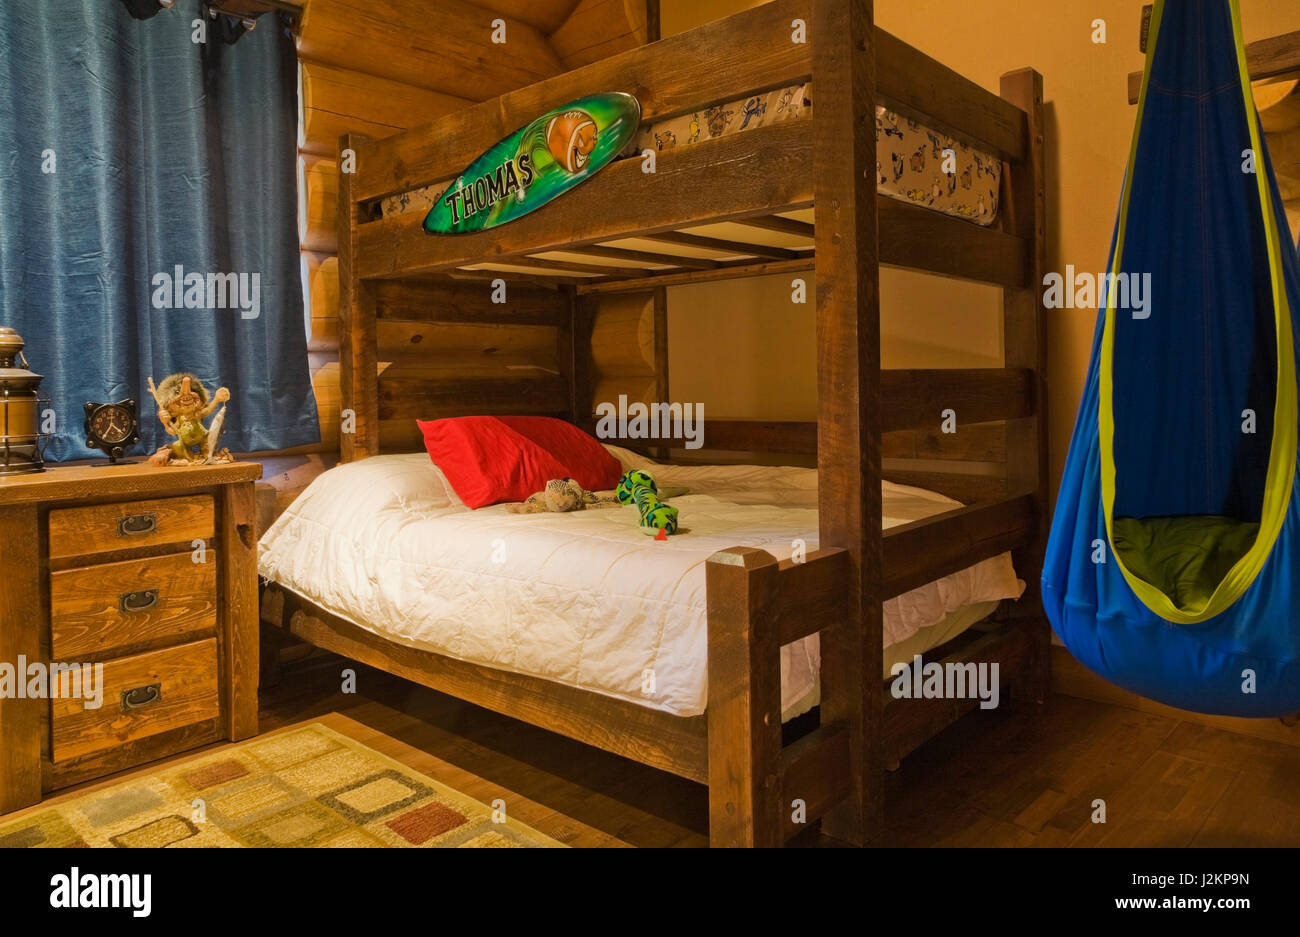 old wooden bunk bed and blue and green hammock chair in boys bedroom on ground floor inside a luxurious scandinavian log and timber cottage style home old wooden bunk bed and blue and green hammock chair in boys      rh   alamy